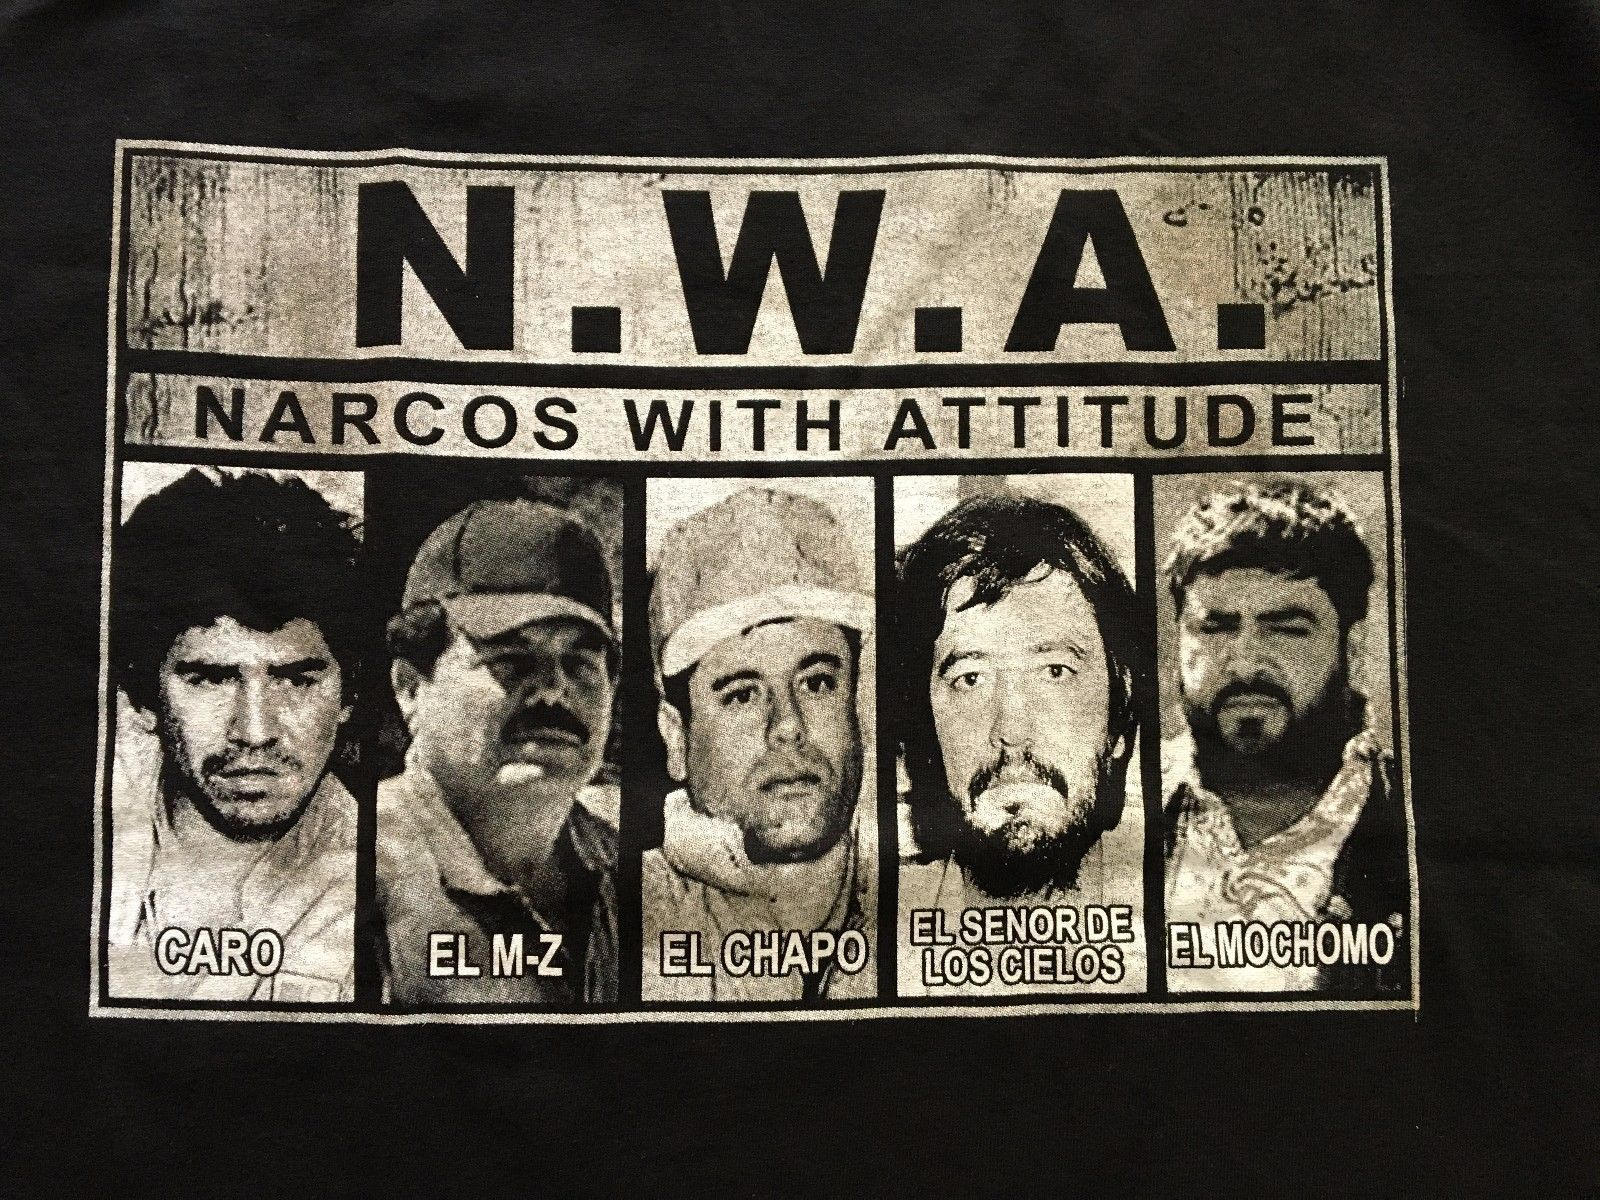 1600x1200 Details about N.W.A Straight Outta Sinaloa Narco Caro Mayo ...